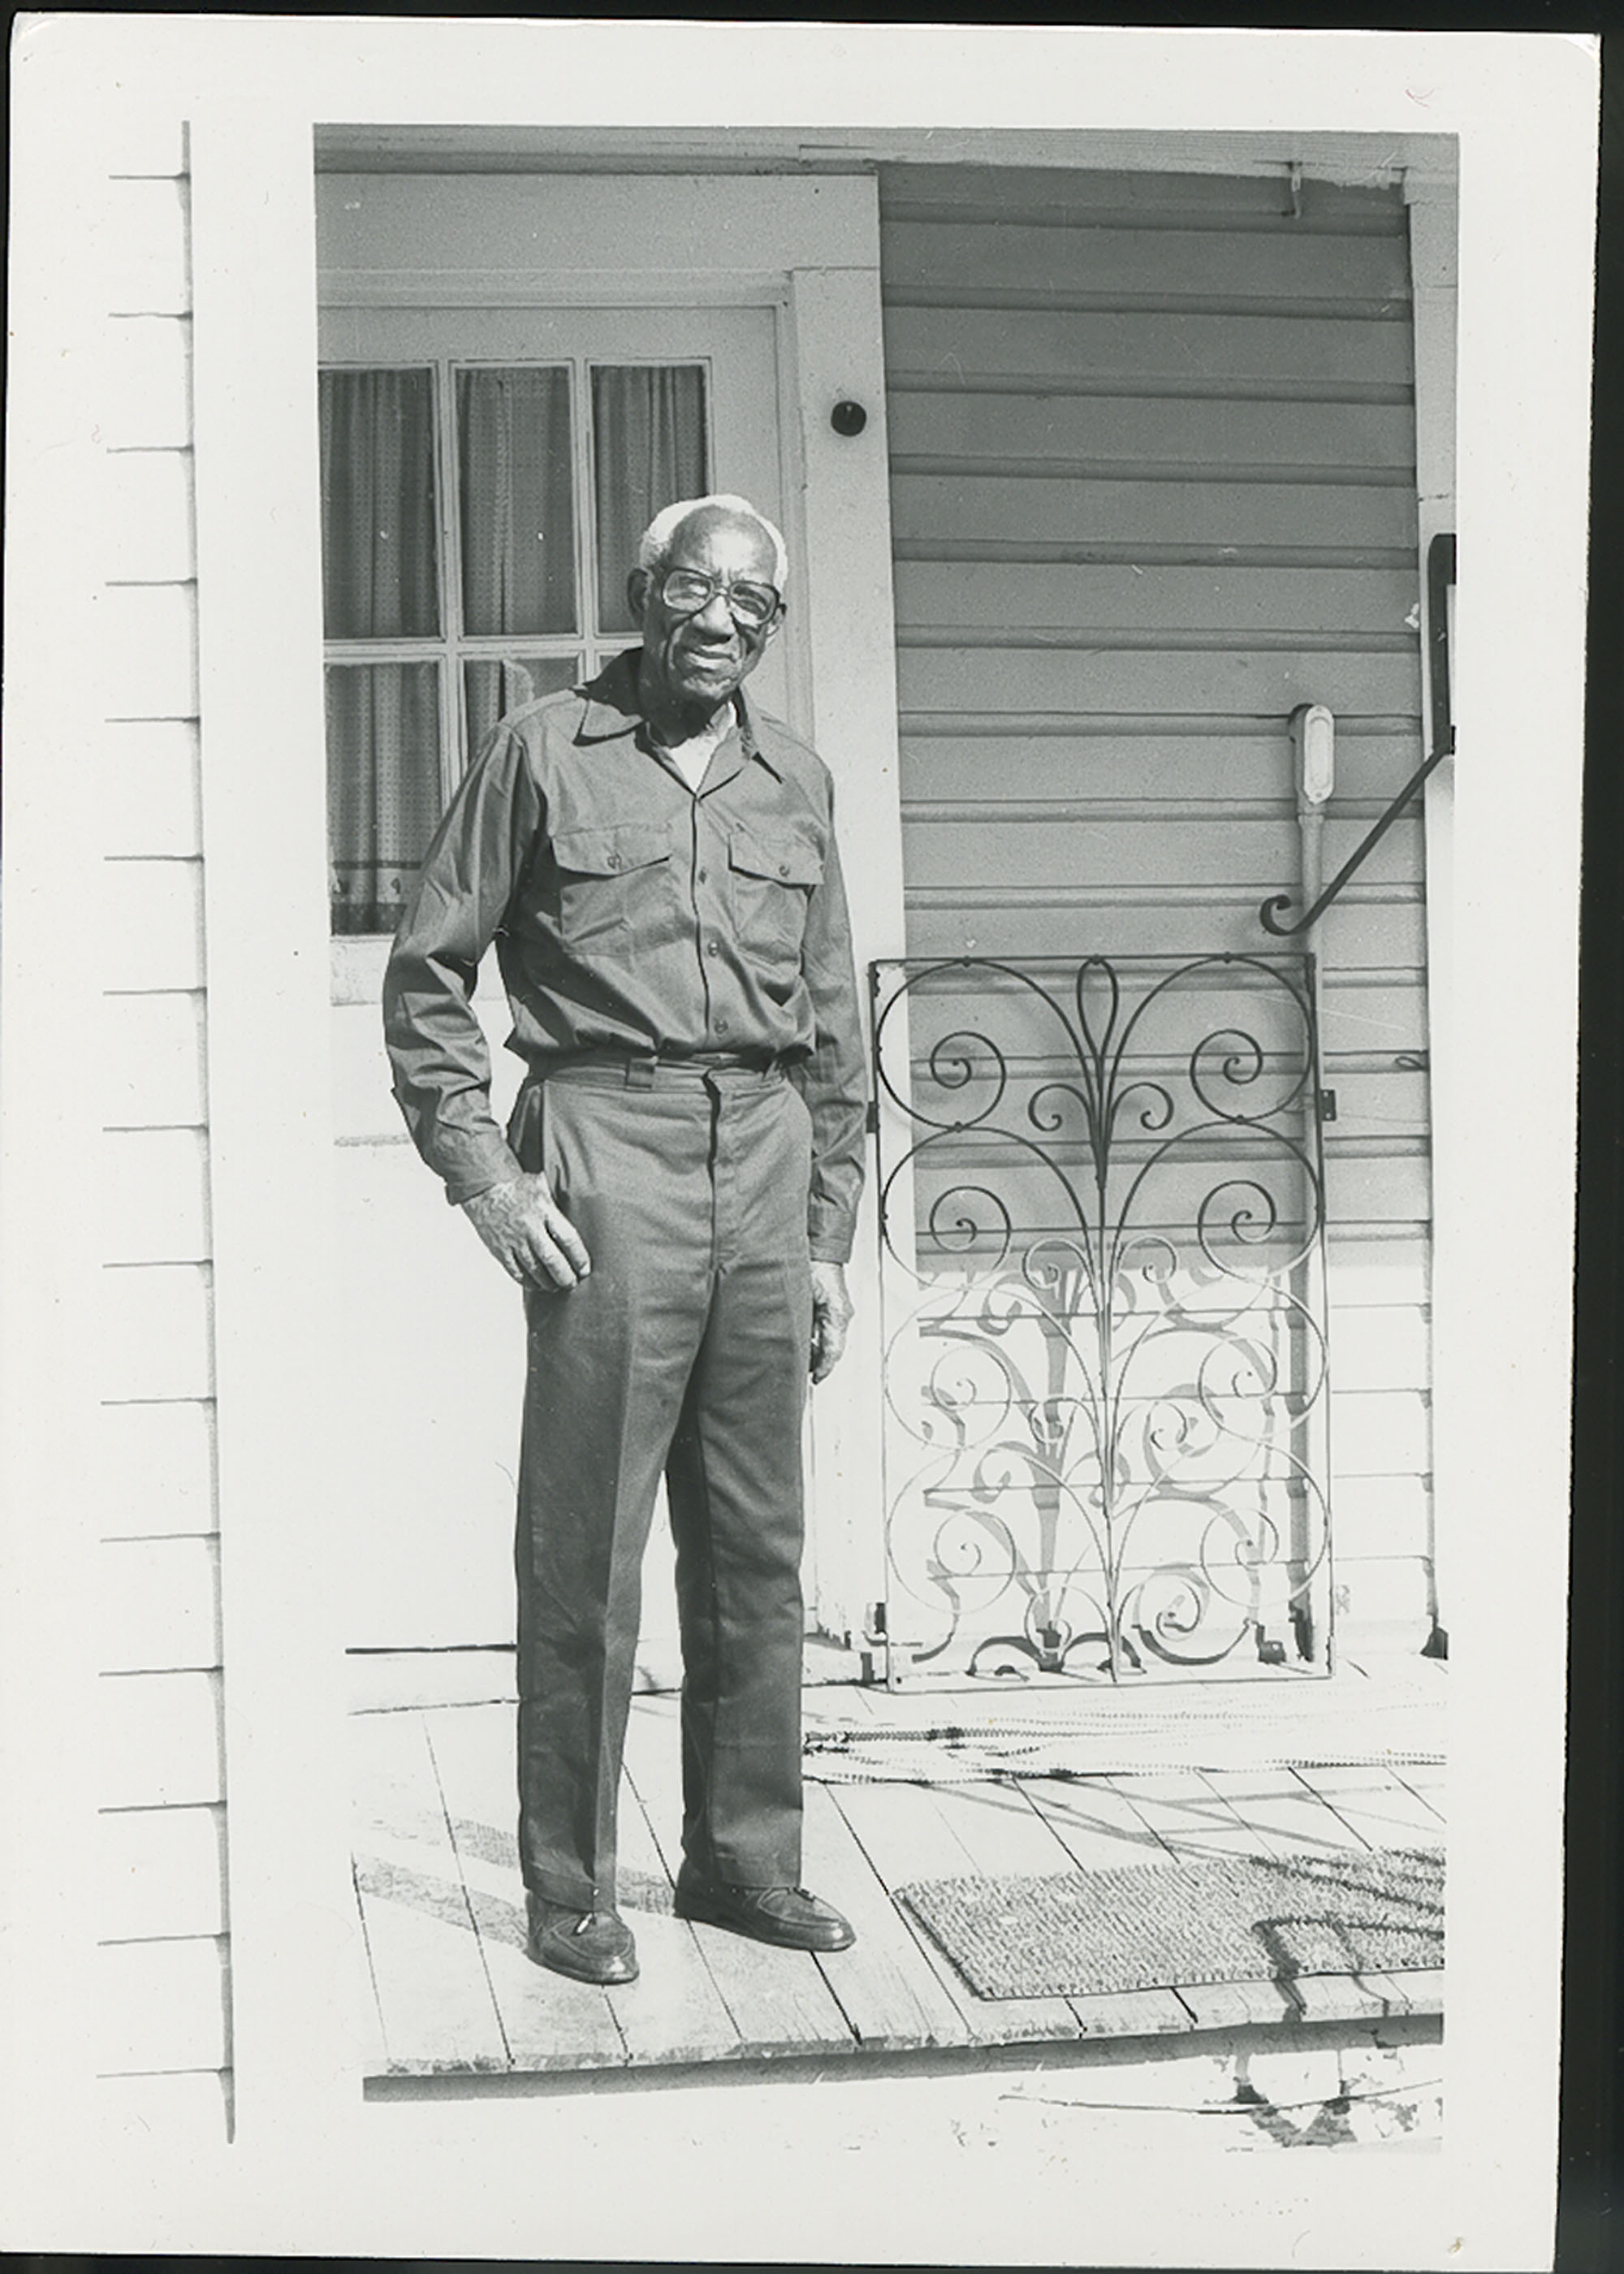 Photograph Philip Simmons standing next to window grate on his porch.